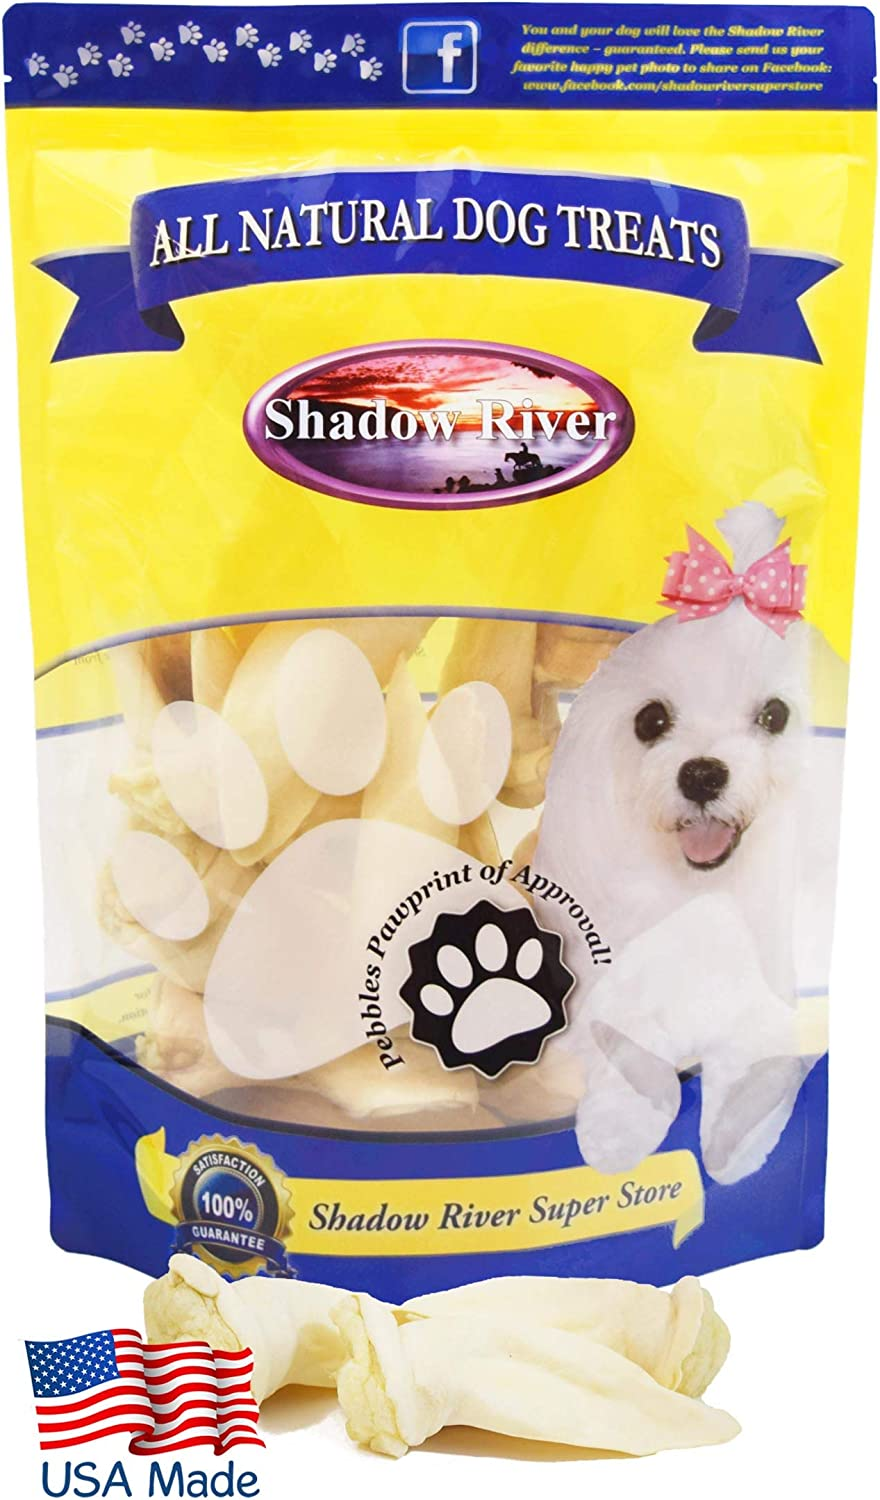 Premium All Natural Treats 10 Pack Extra Small Size Ears Shadow River Lamb Ear Chews for Dogs